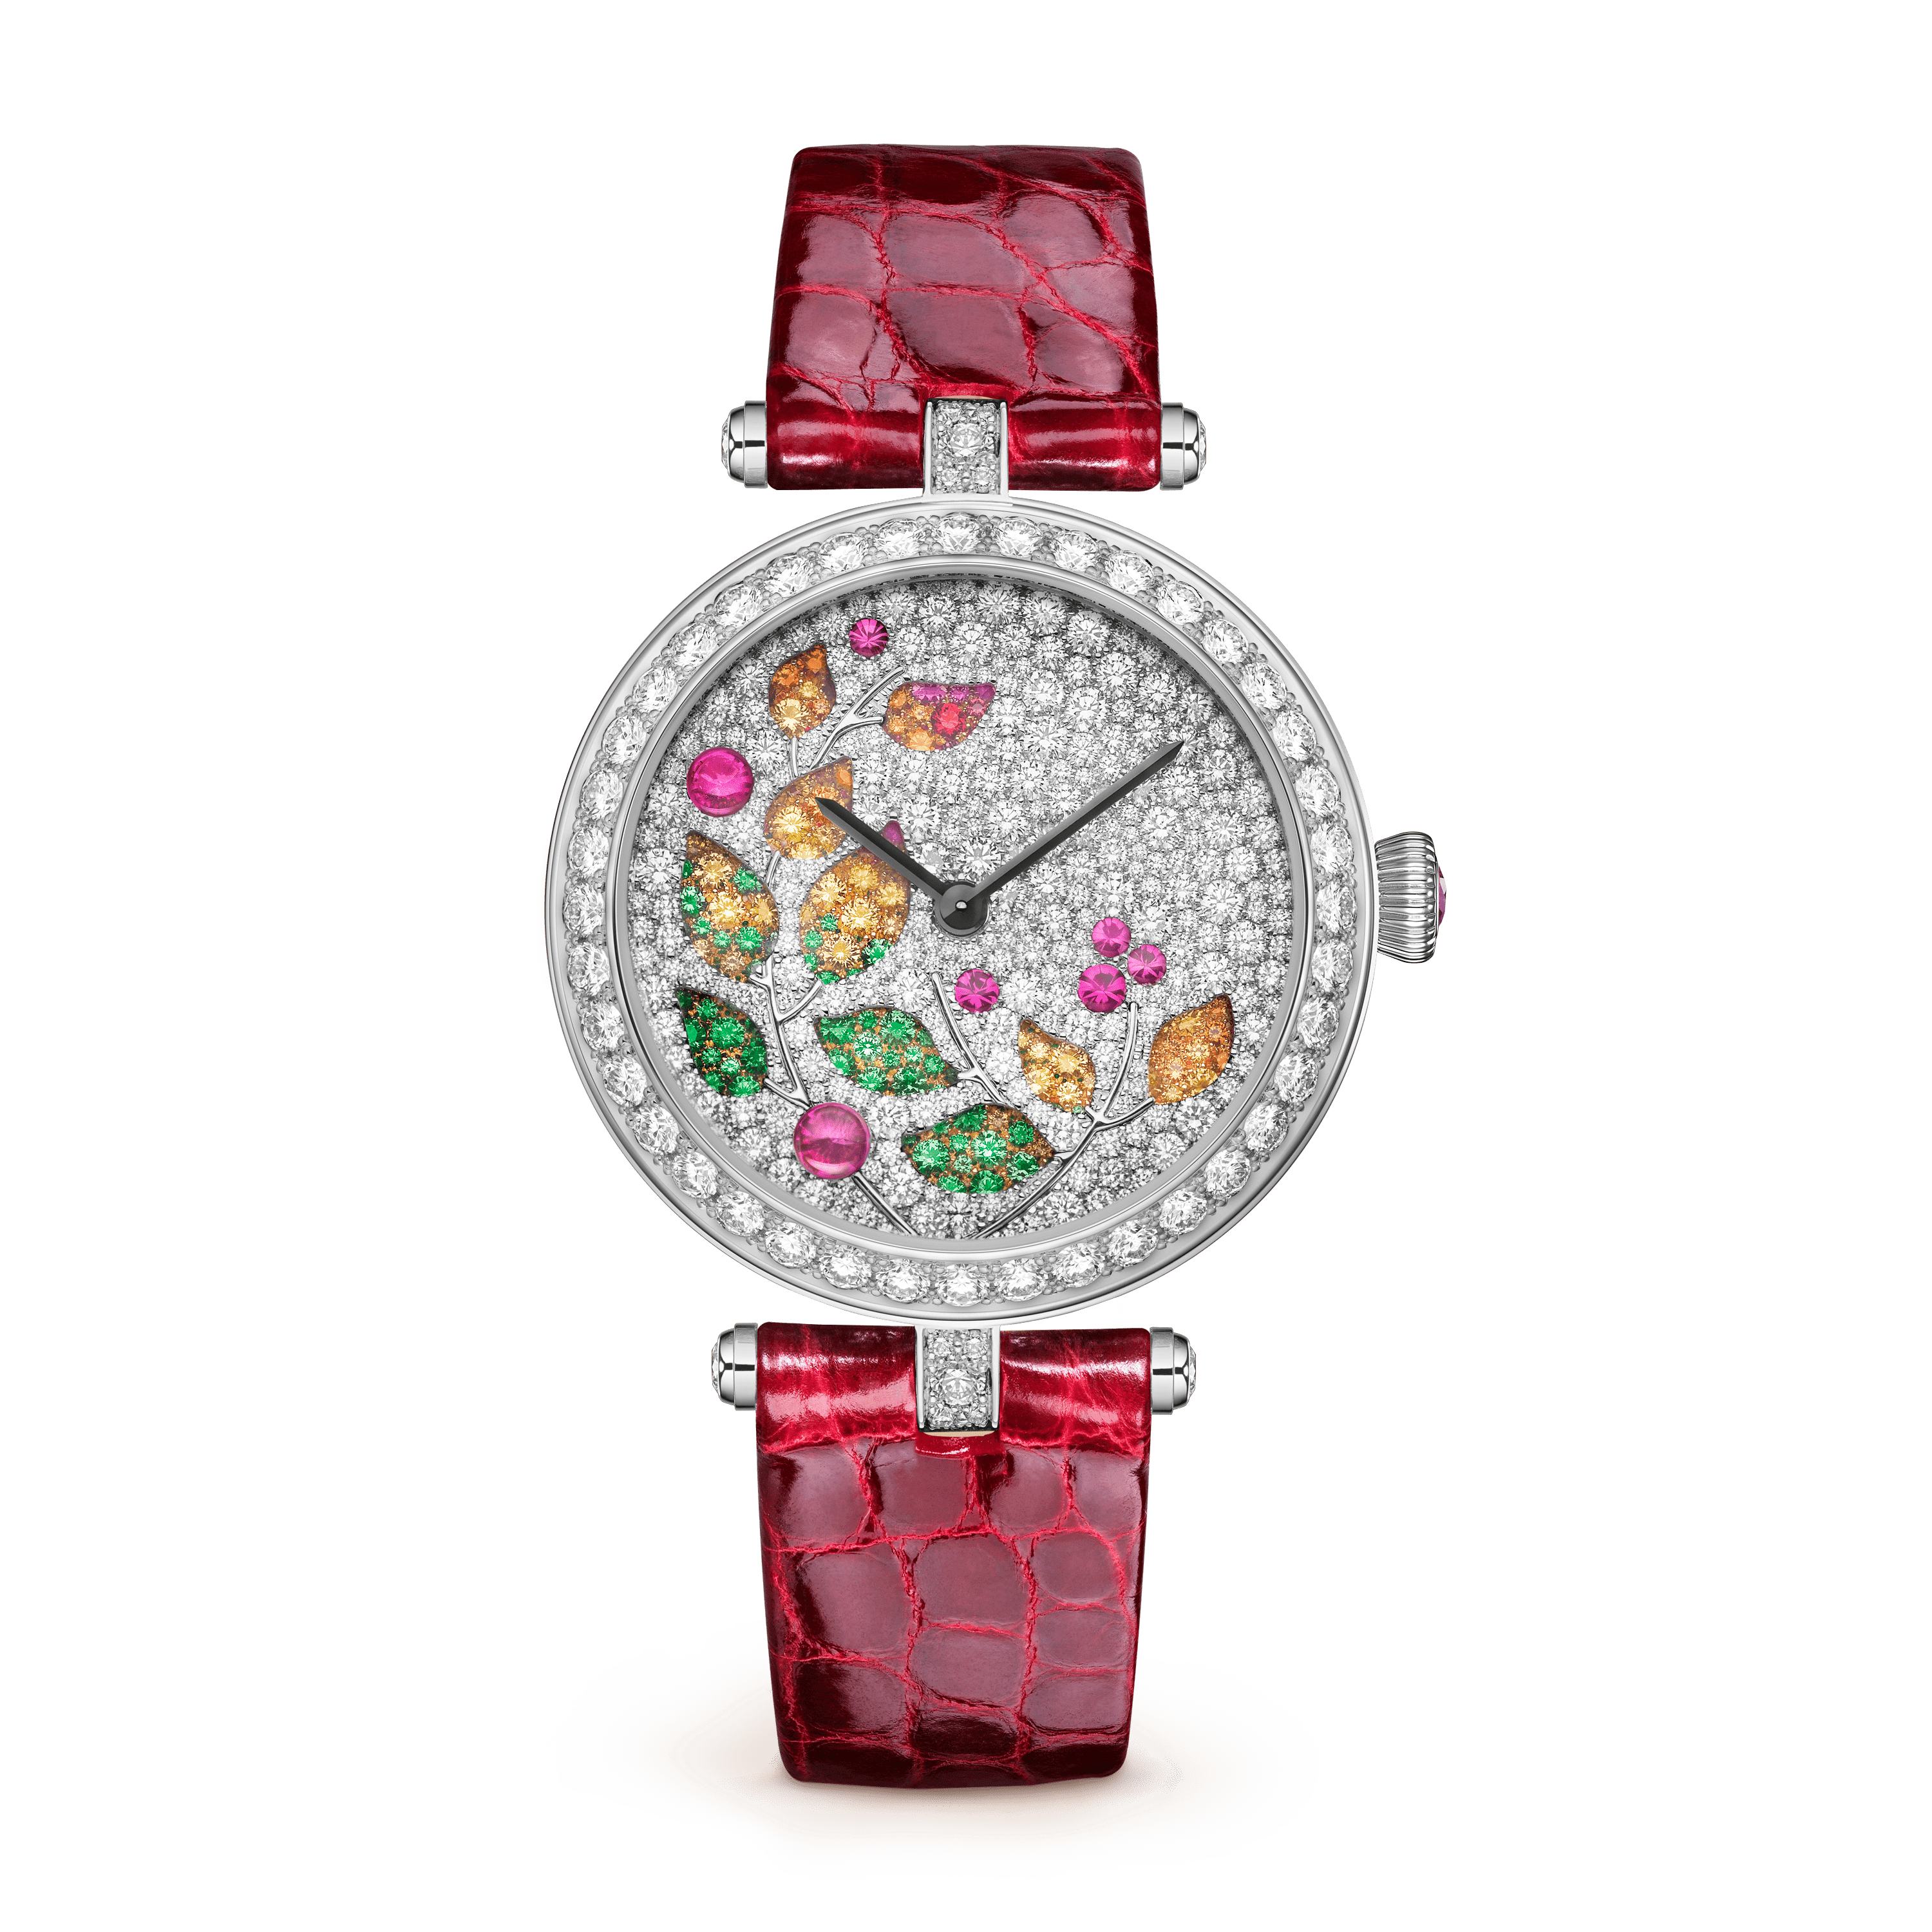 Lady Jour des Fleurs Watch,Alligator Shiny - Front View - VCARO8O000 - Van Cleef & Arpels